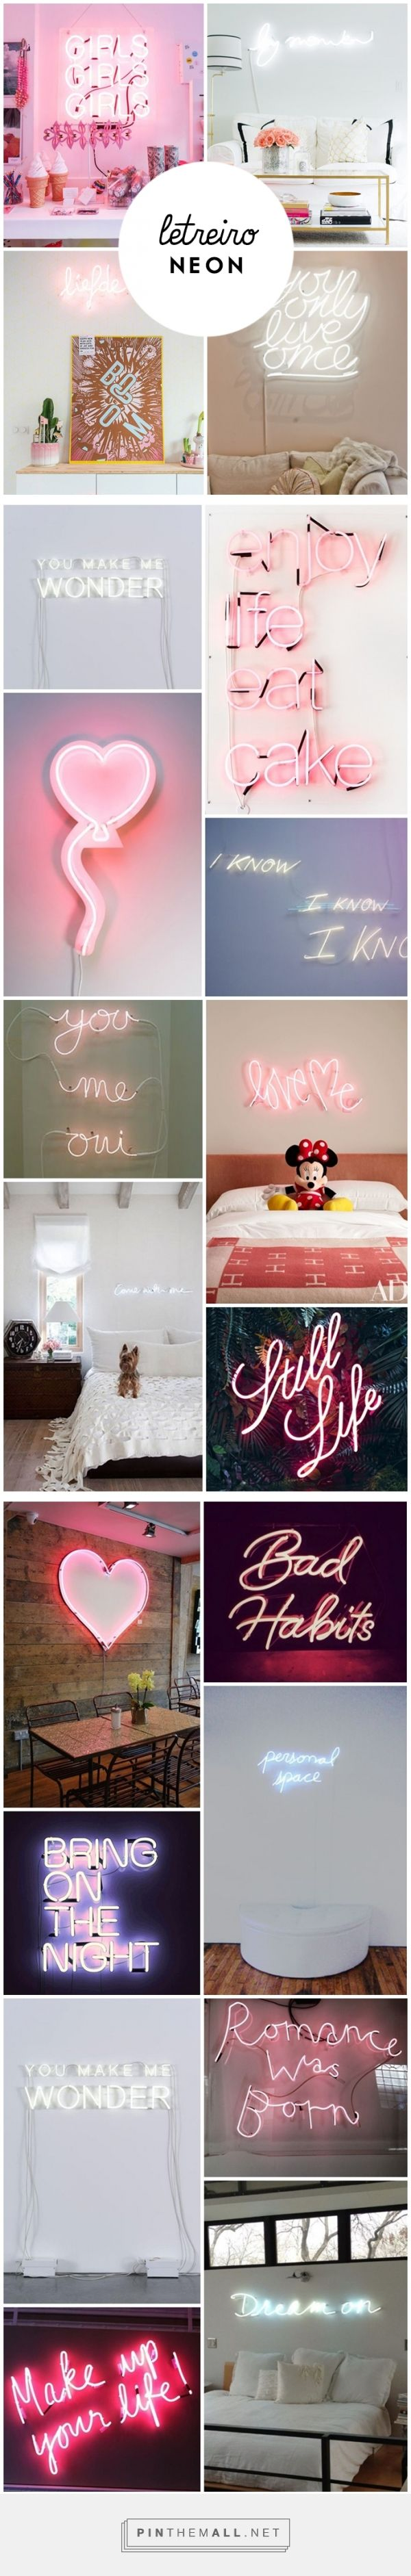 How To Make a DIY Neon Sign with EL Wire | Diy neon sign, Wire ...